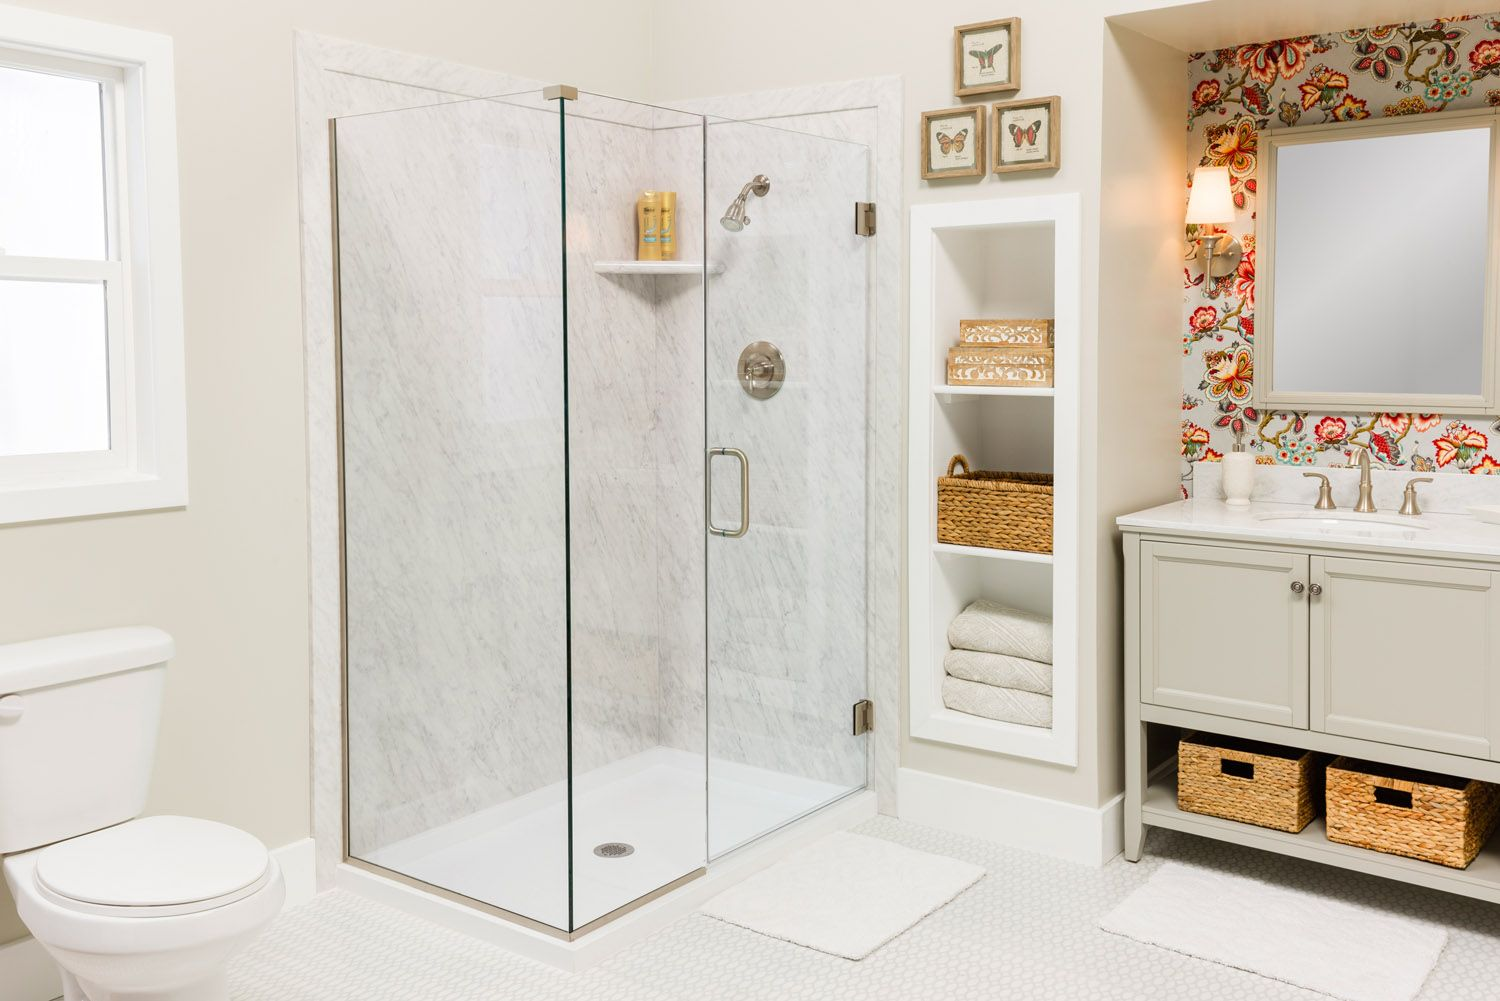 Precision Fit Bath Is Bathroom Remodeling Company In Cocoa Florida Shower Renovation Bathrooms Remodel Tub To Shower Conversion